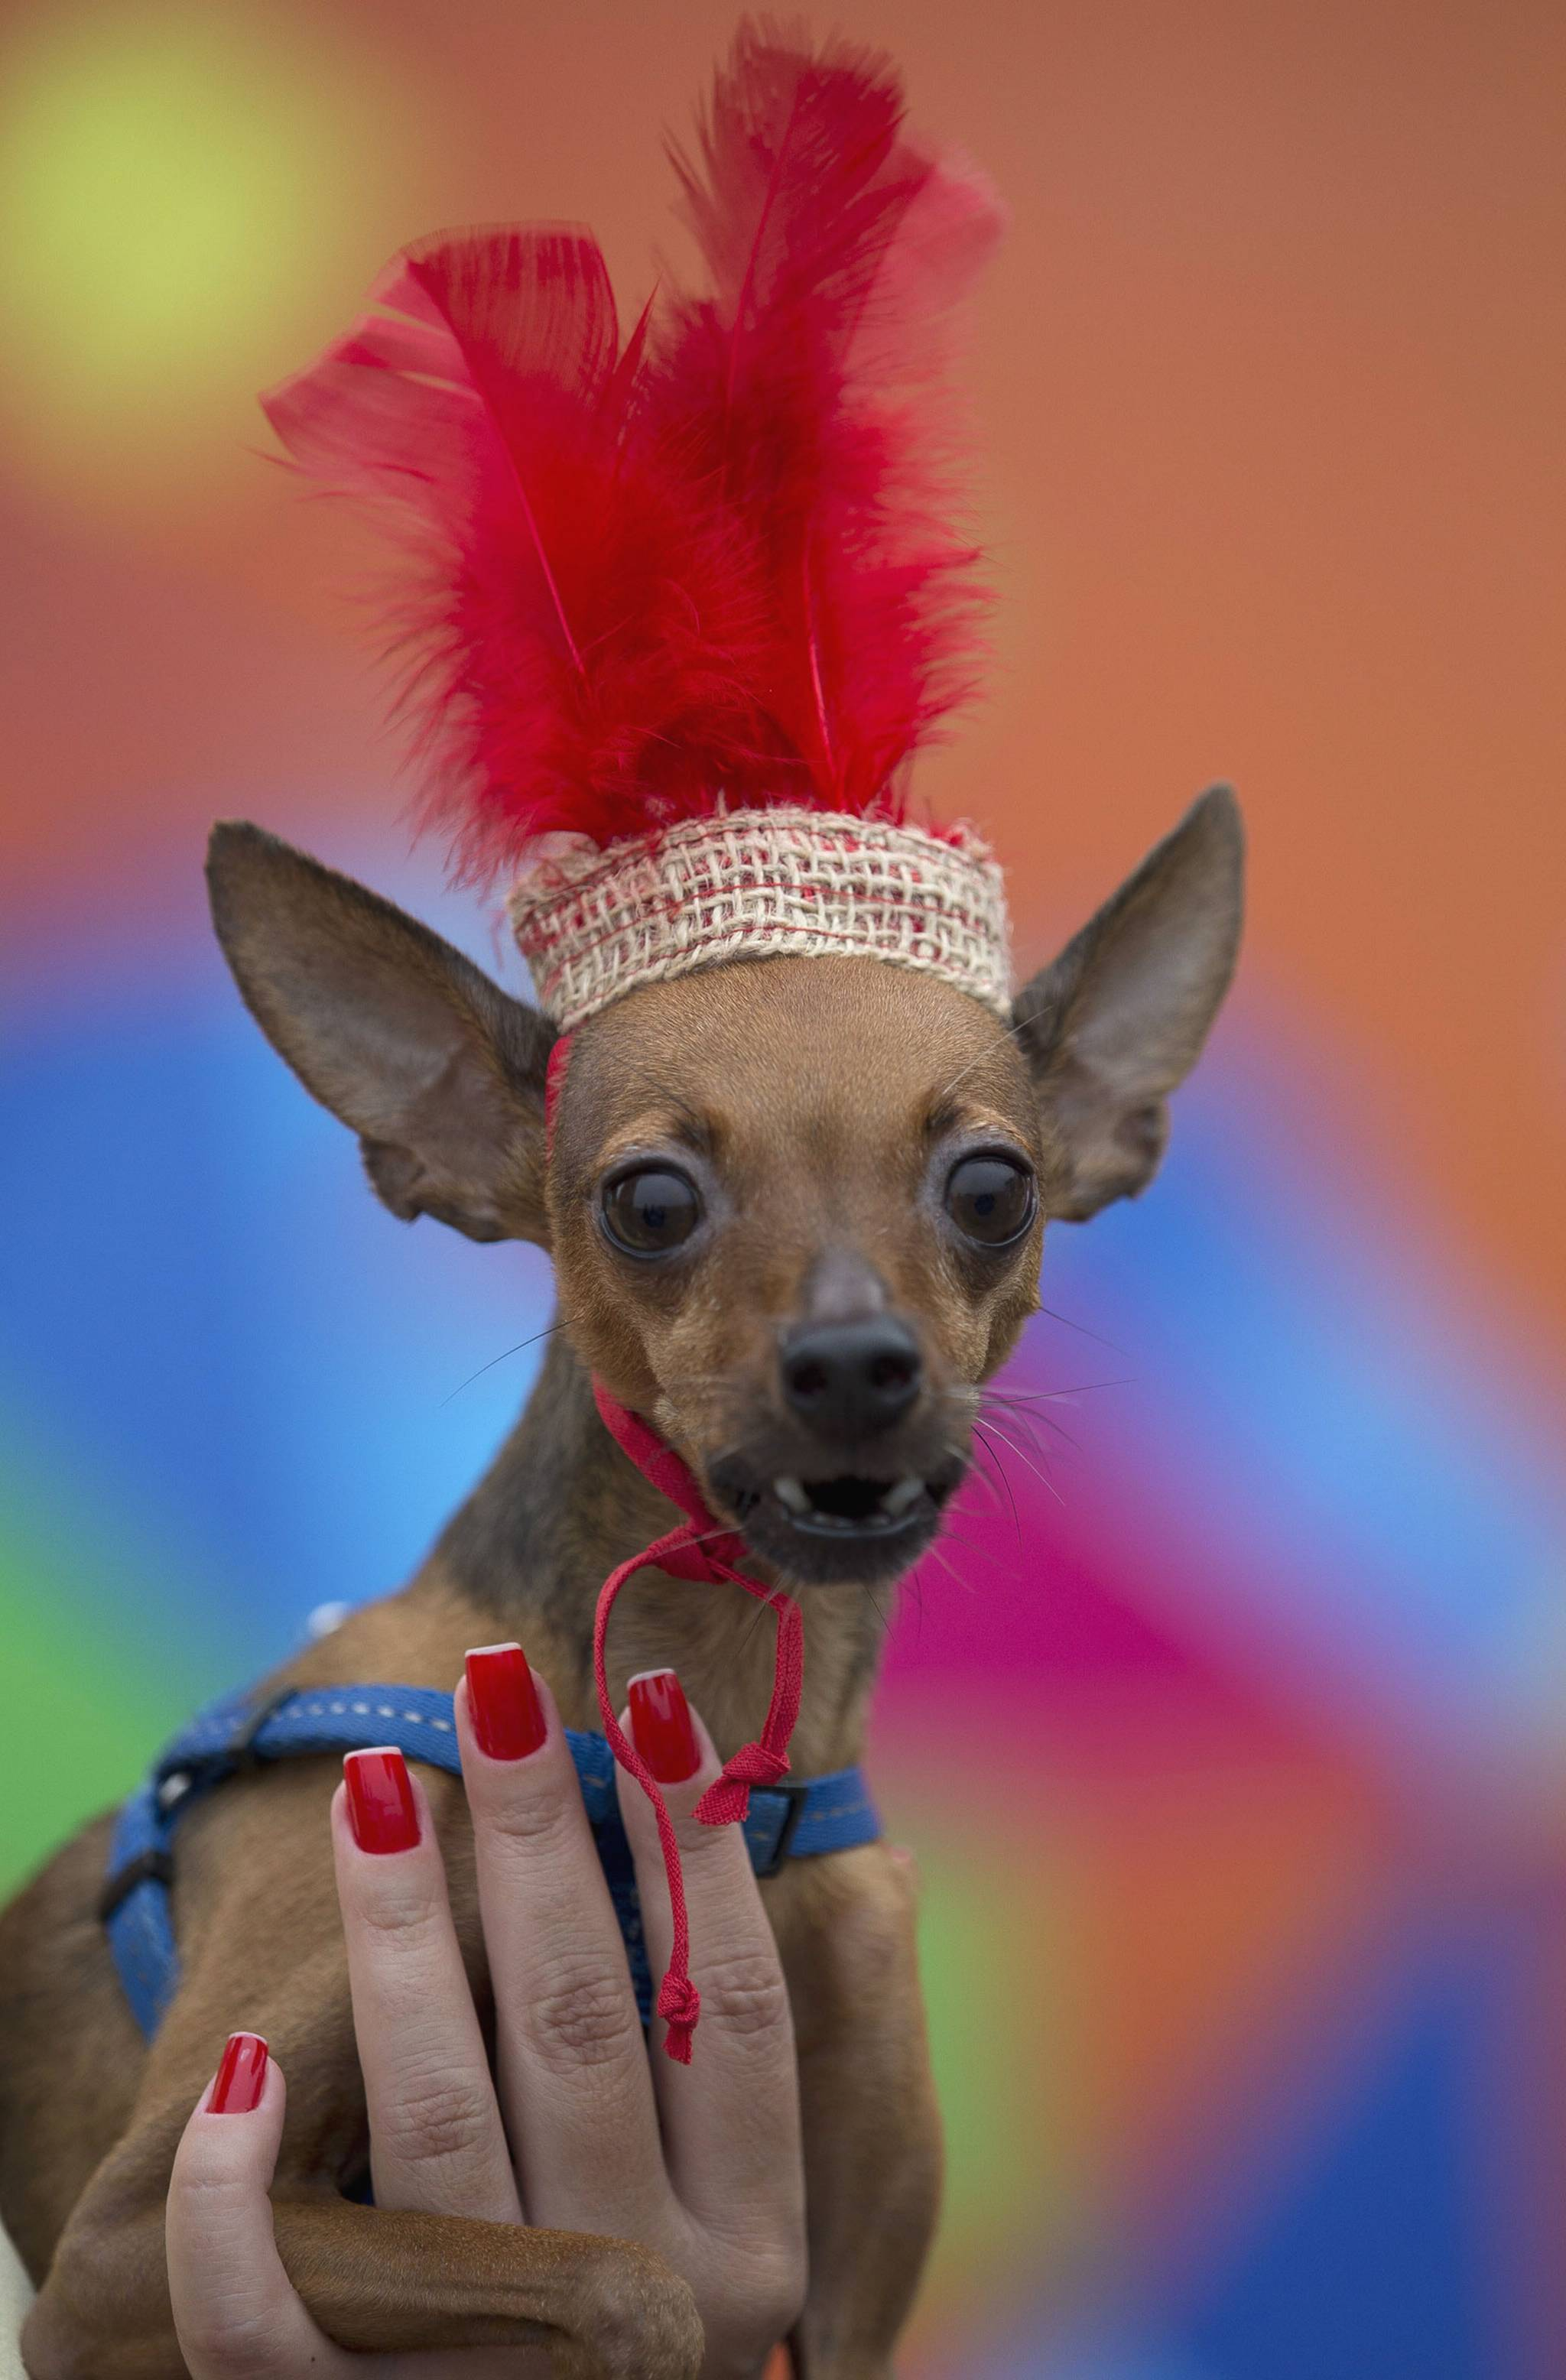 the carnival dog Mardis gras isn't just for humans california's fanciest dogs gathered in rancho santa fe sunday for a canine carnival, complete with beads, bows and plenty of excited barks aboard floats.